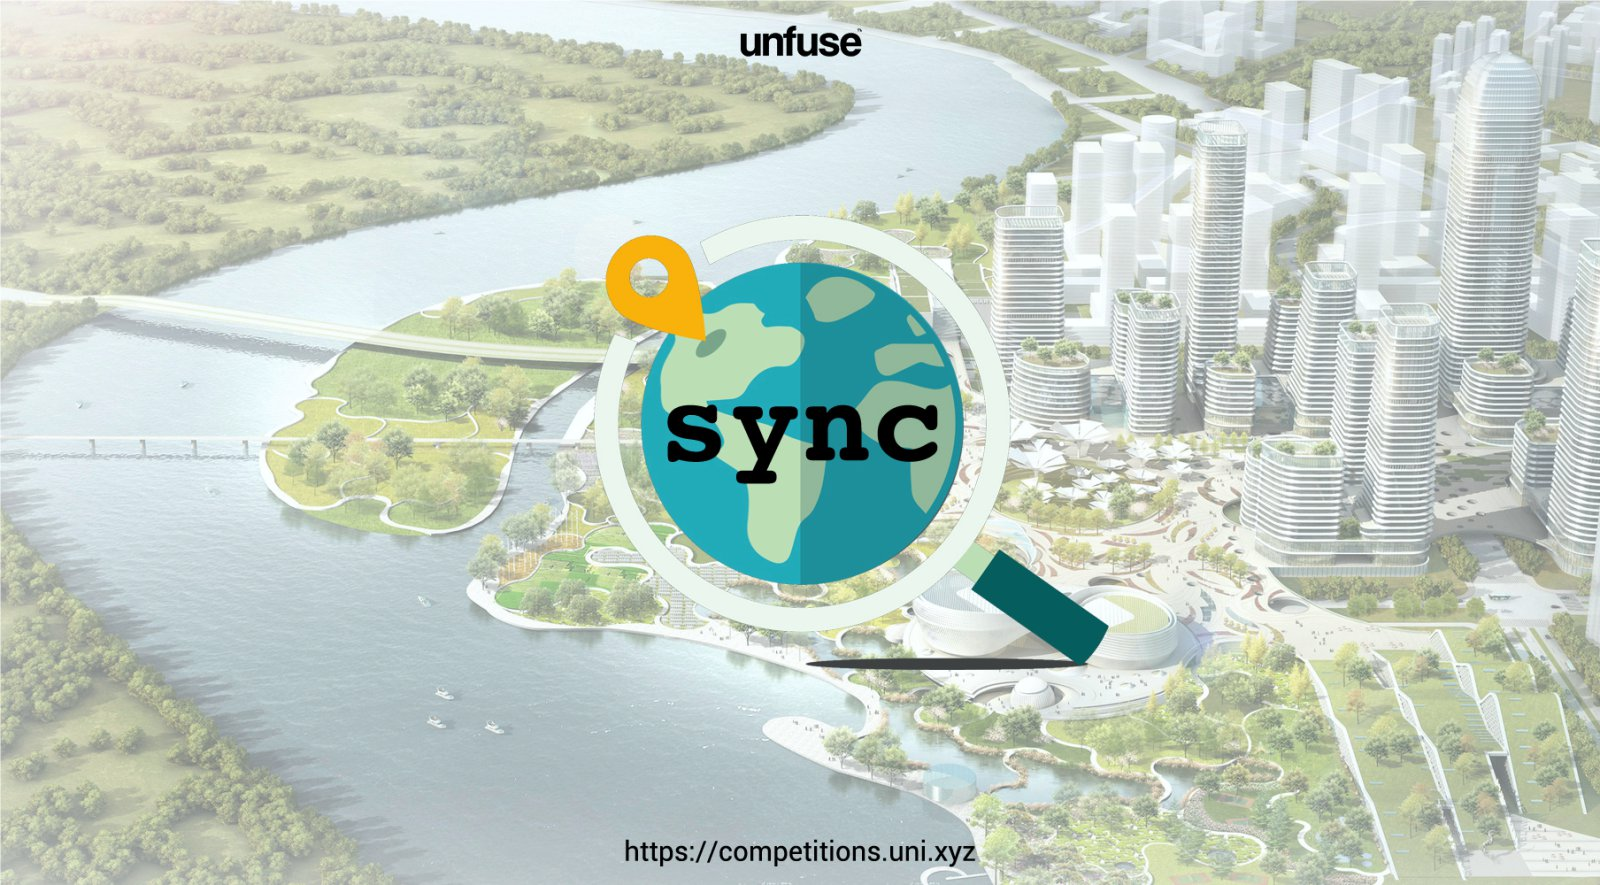 Unfuse sync